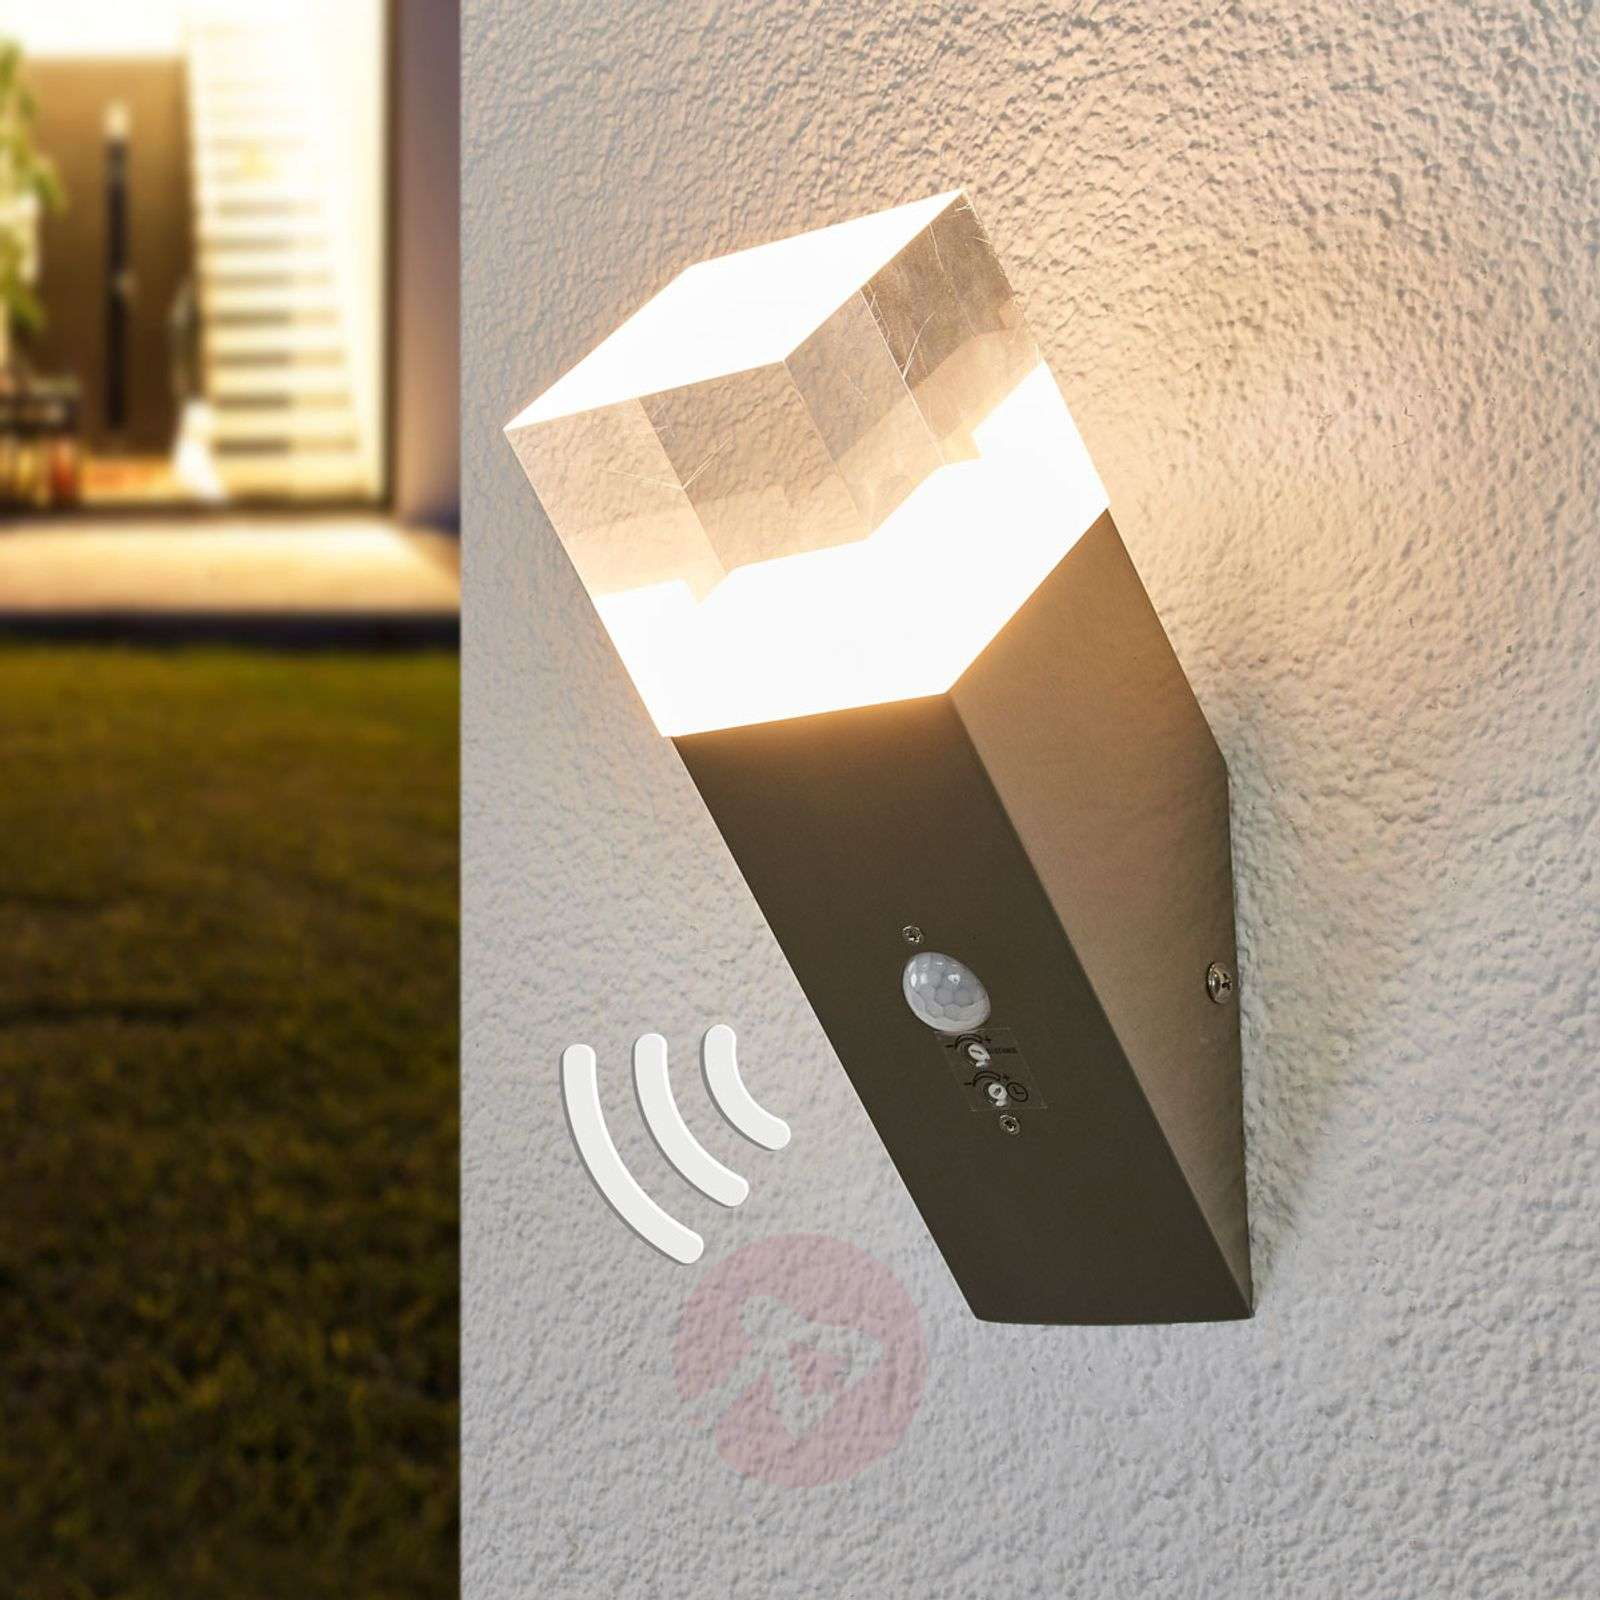 Nerius motion sensor outdoor wall light, LED-9988158-01